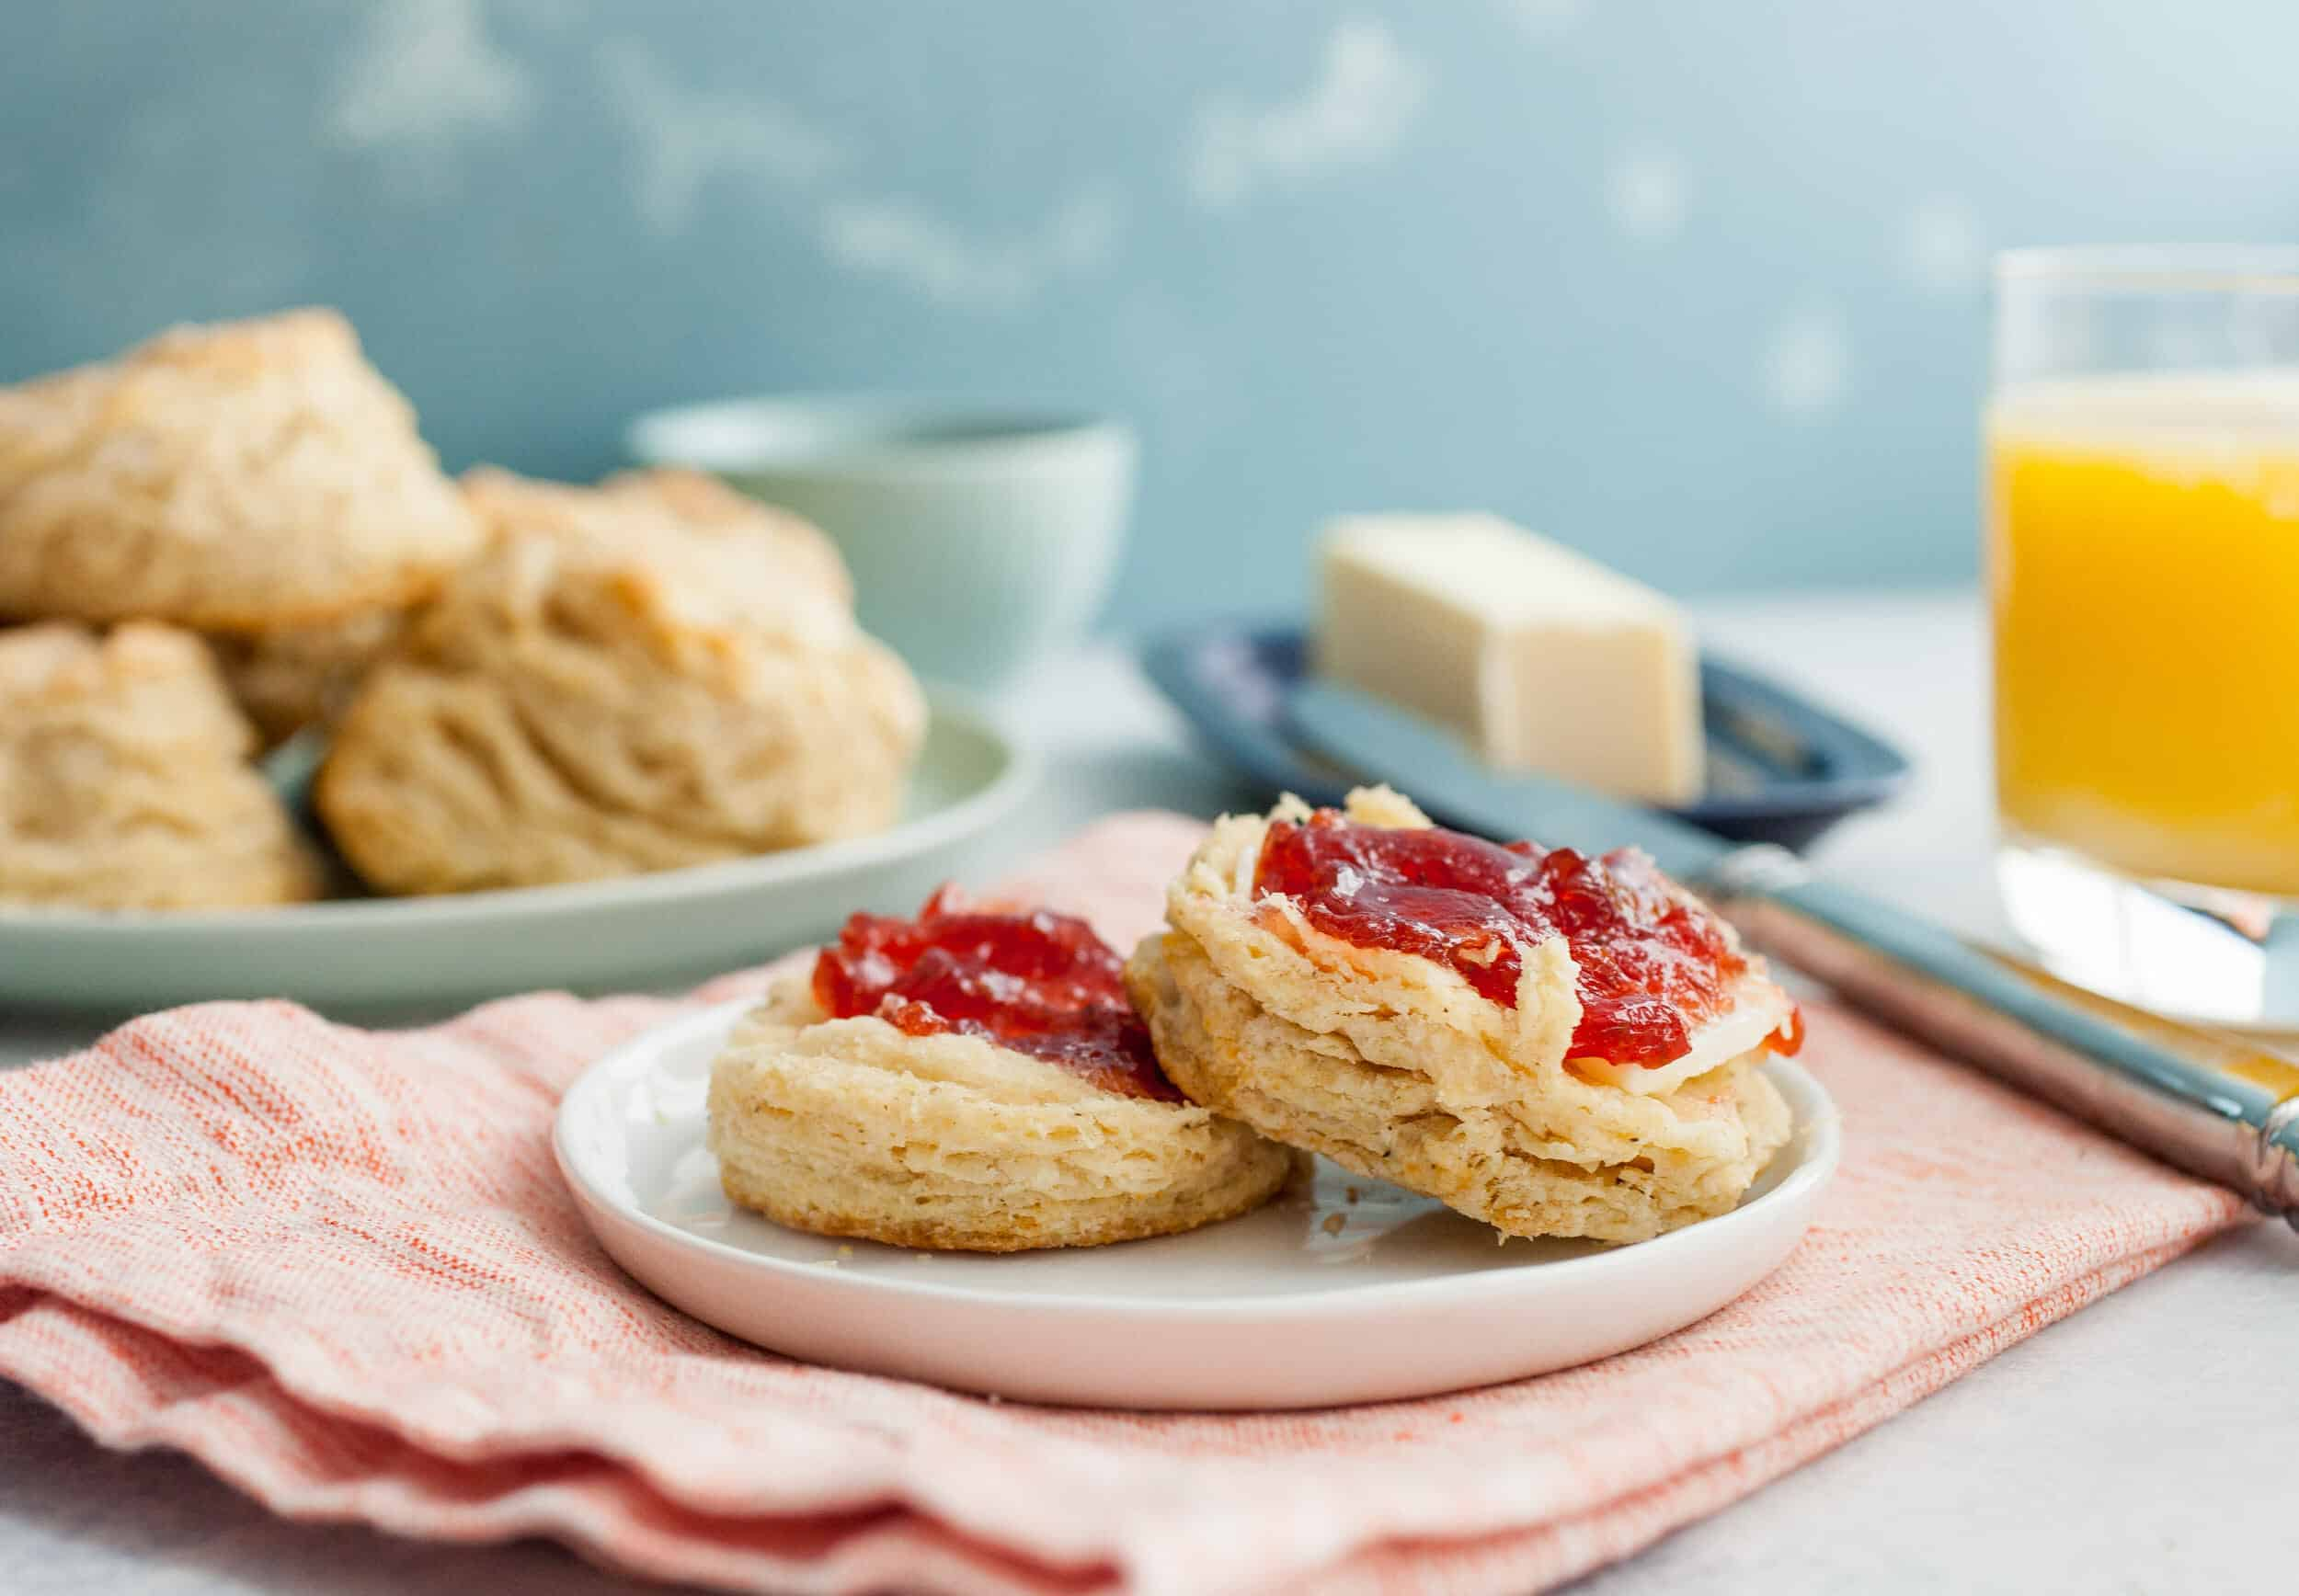 Chicken Biscuits: These simple, rustic biscuits have a secret ingredient that make them completely addictive and give them a deep savory flavor. Hint: It's chicken. You're gonna love these. | macheesmo.com